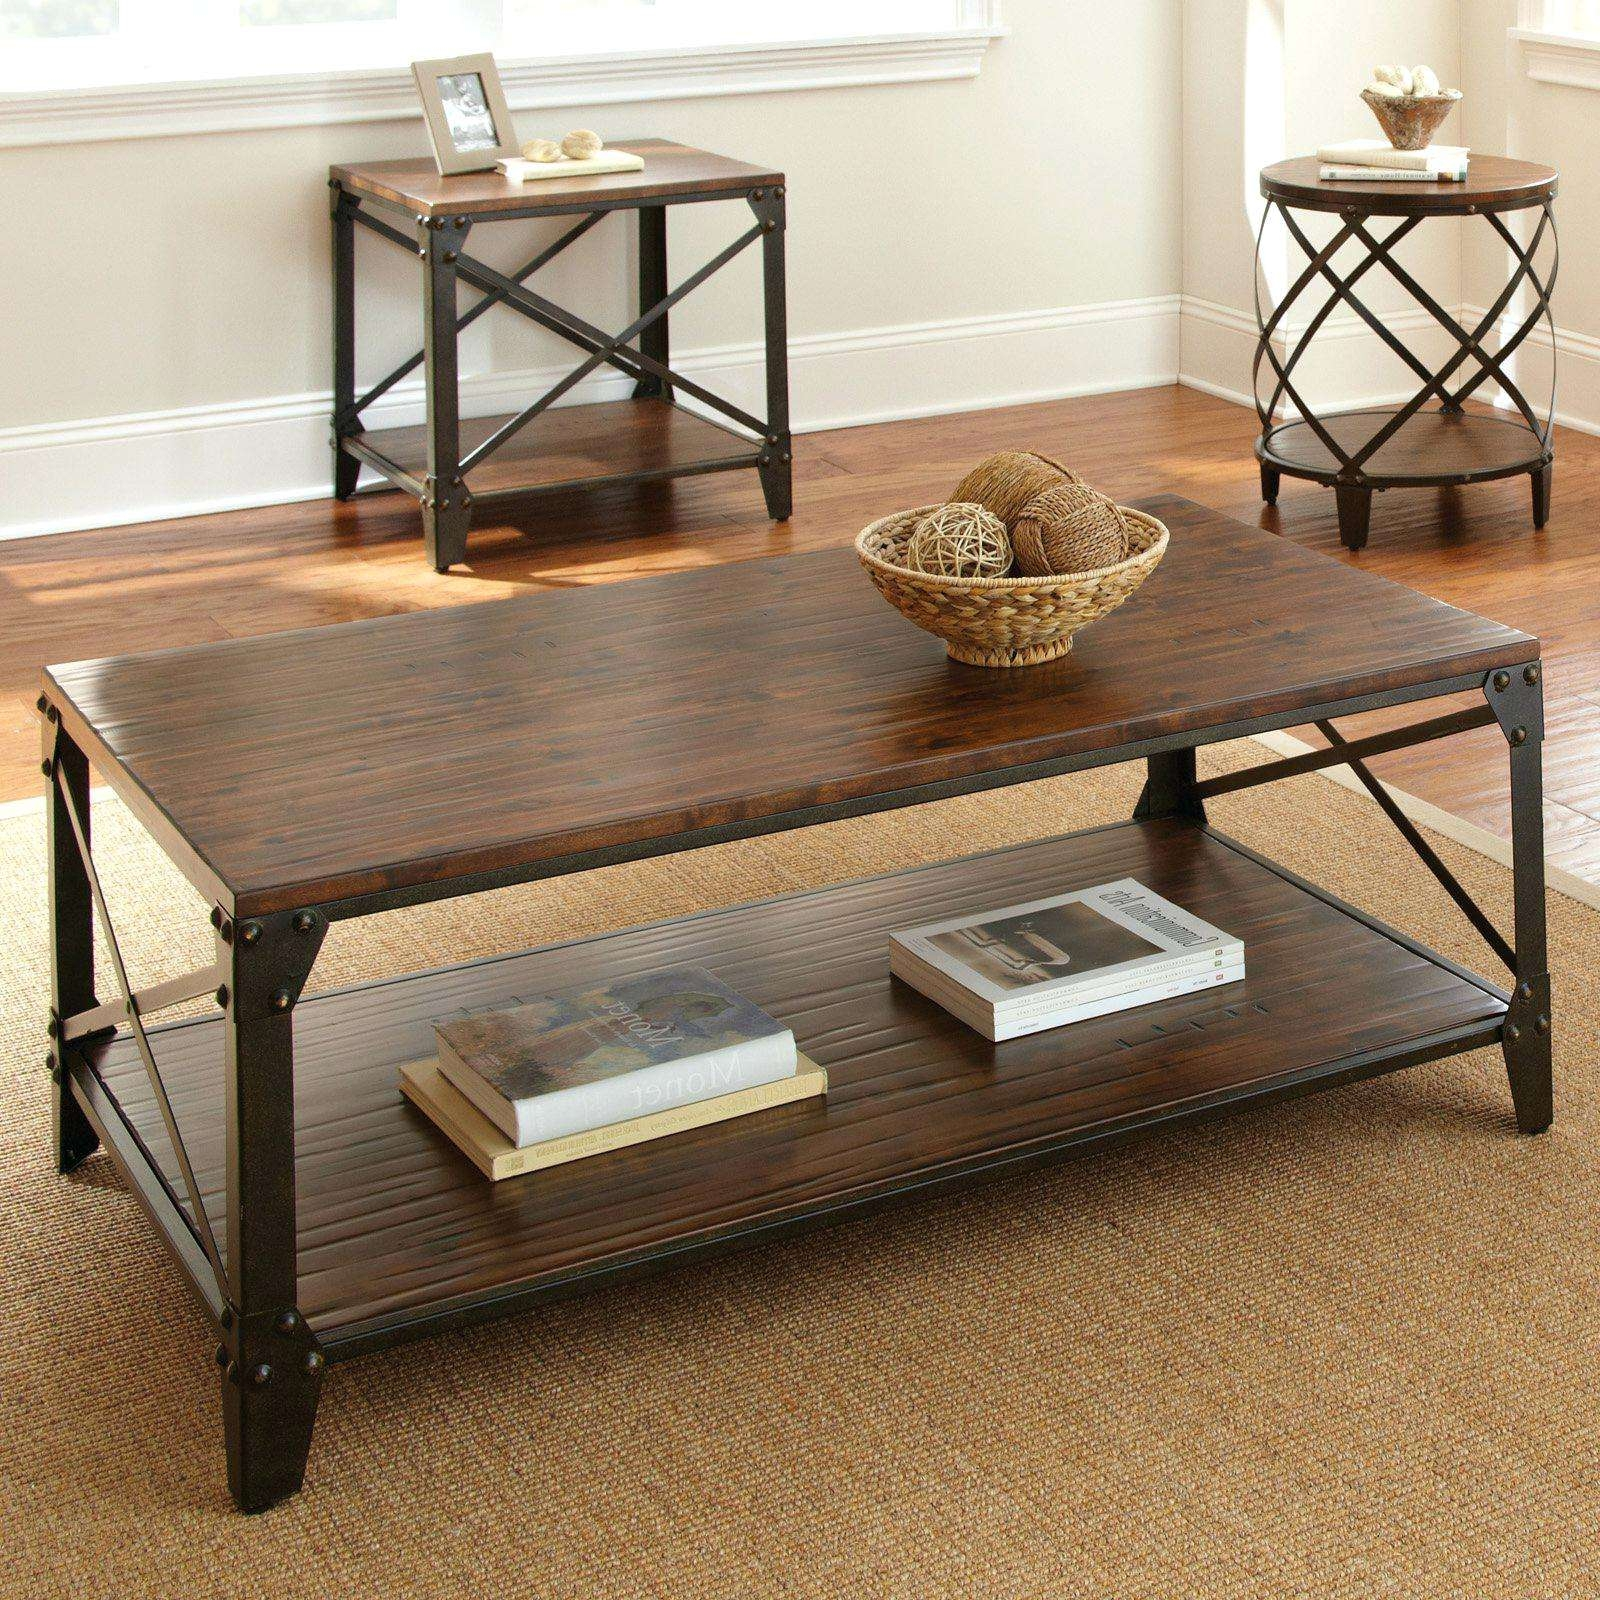 2017 Metal And Wood Coffee Tables Throughout Coffee Tables : Dark Brown Coffee Table Set Striking Images (View 1 of 20)